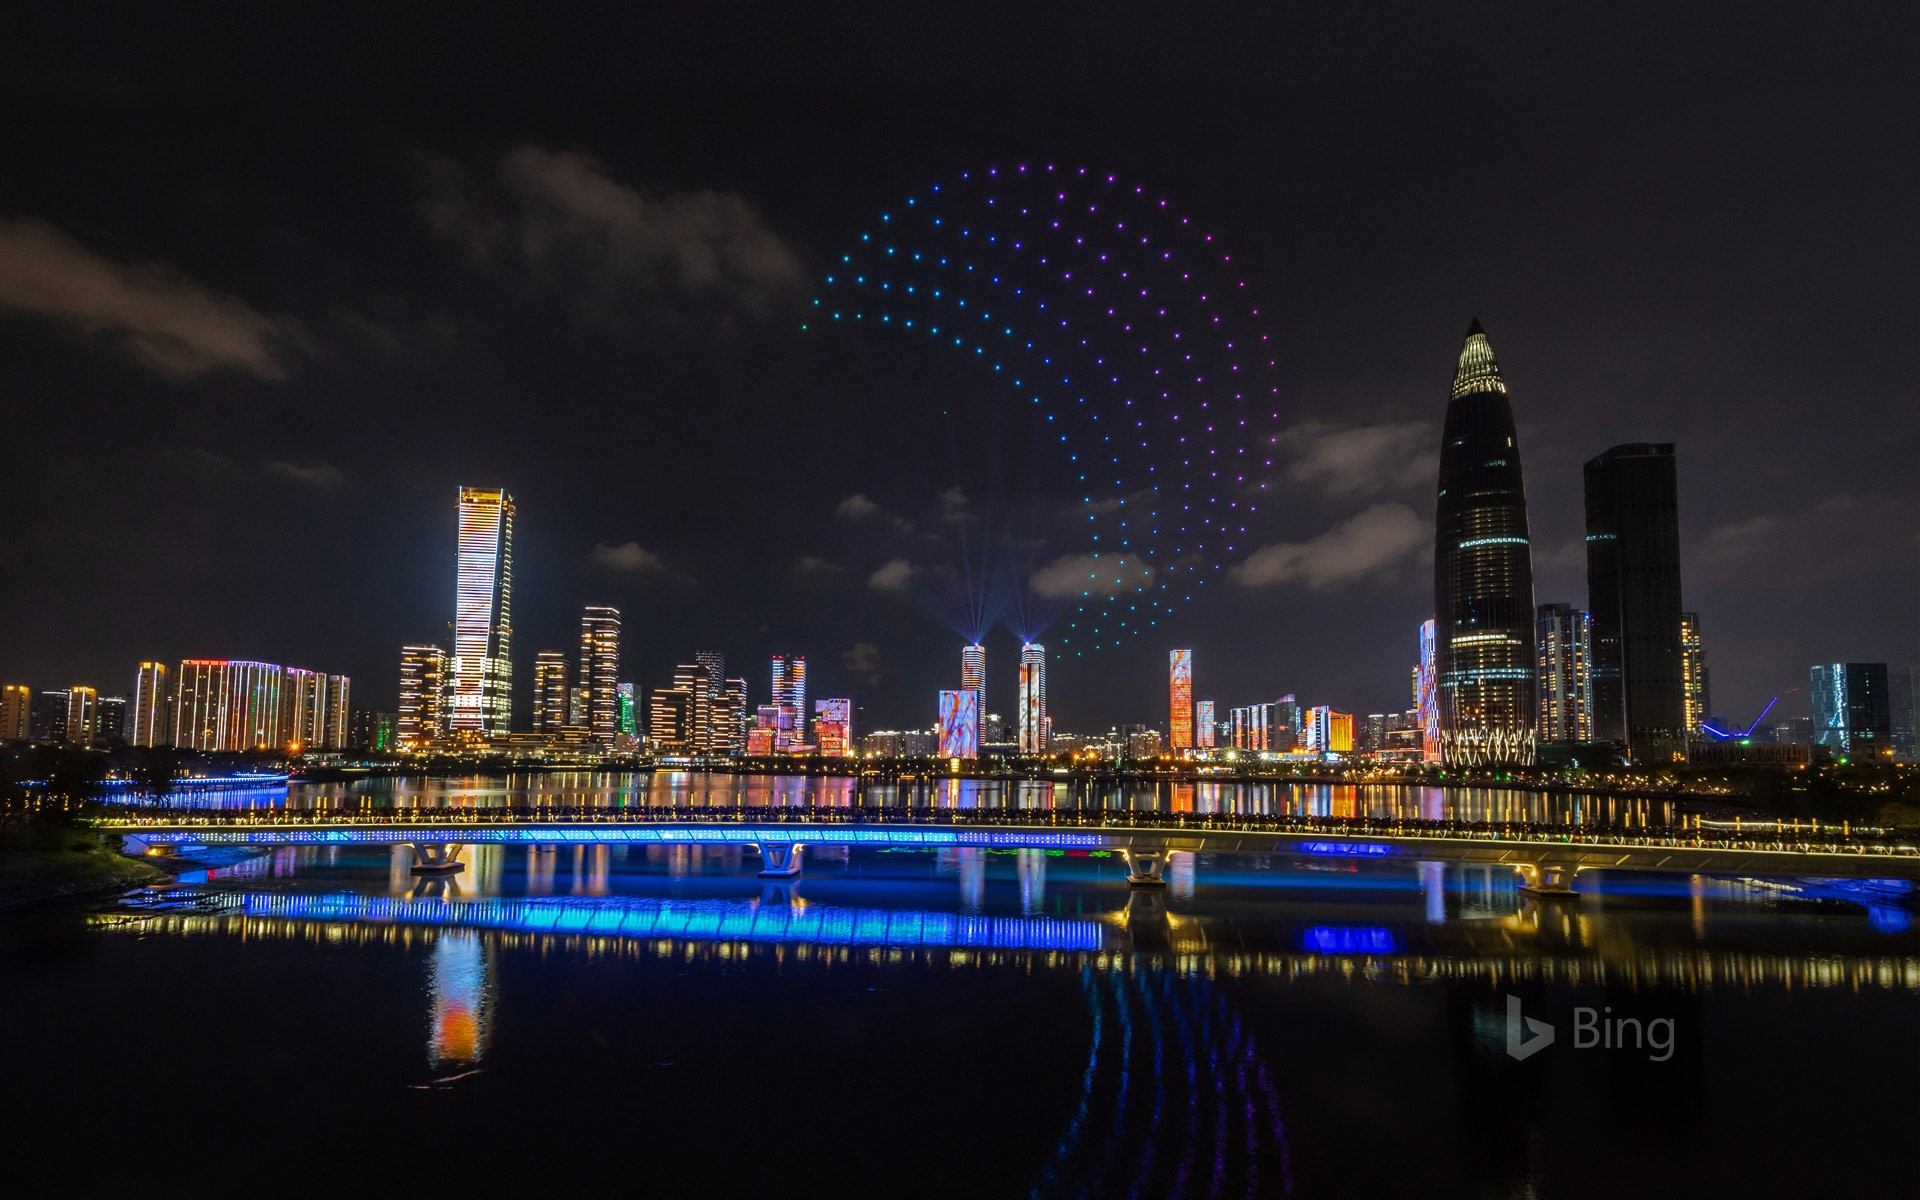 Drones light up the sky over Shenzhen, China